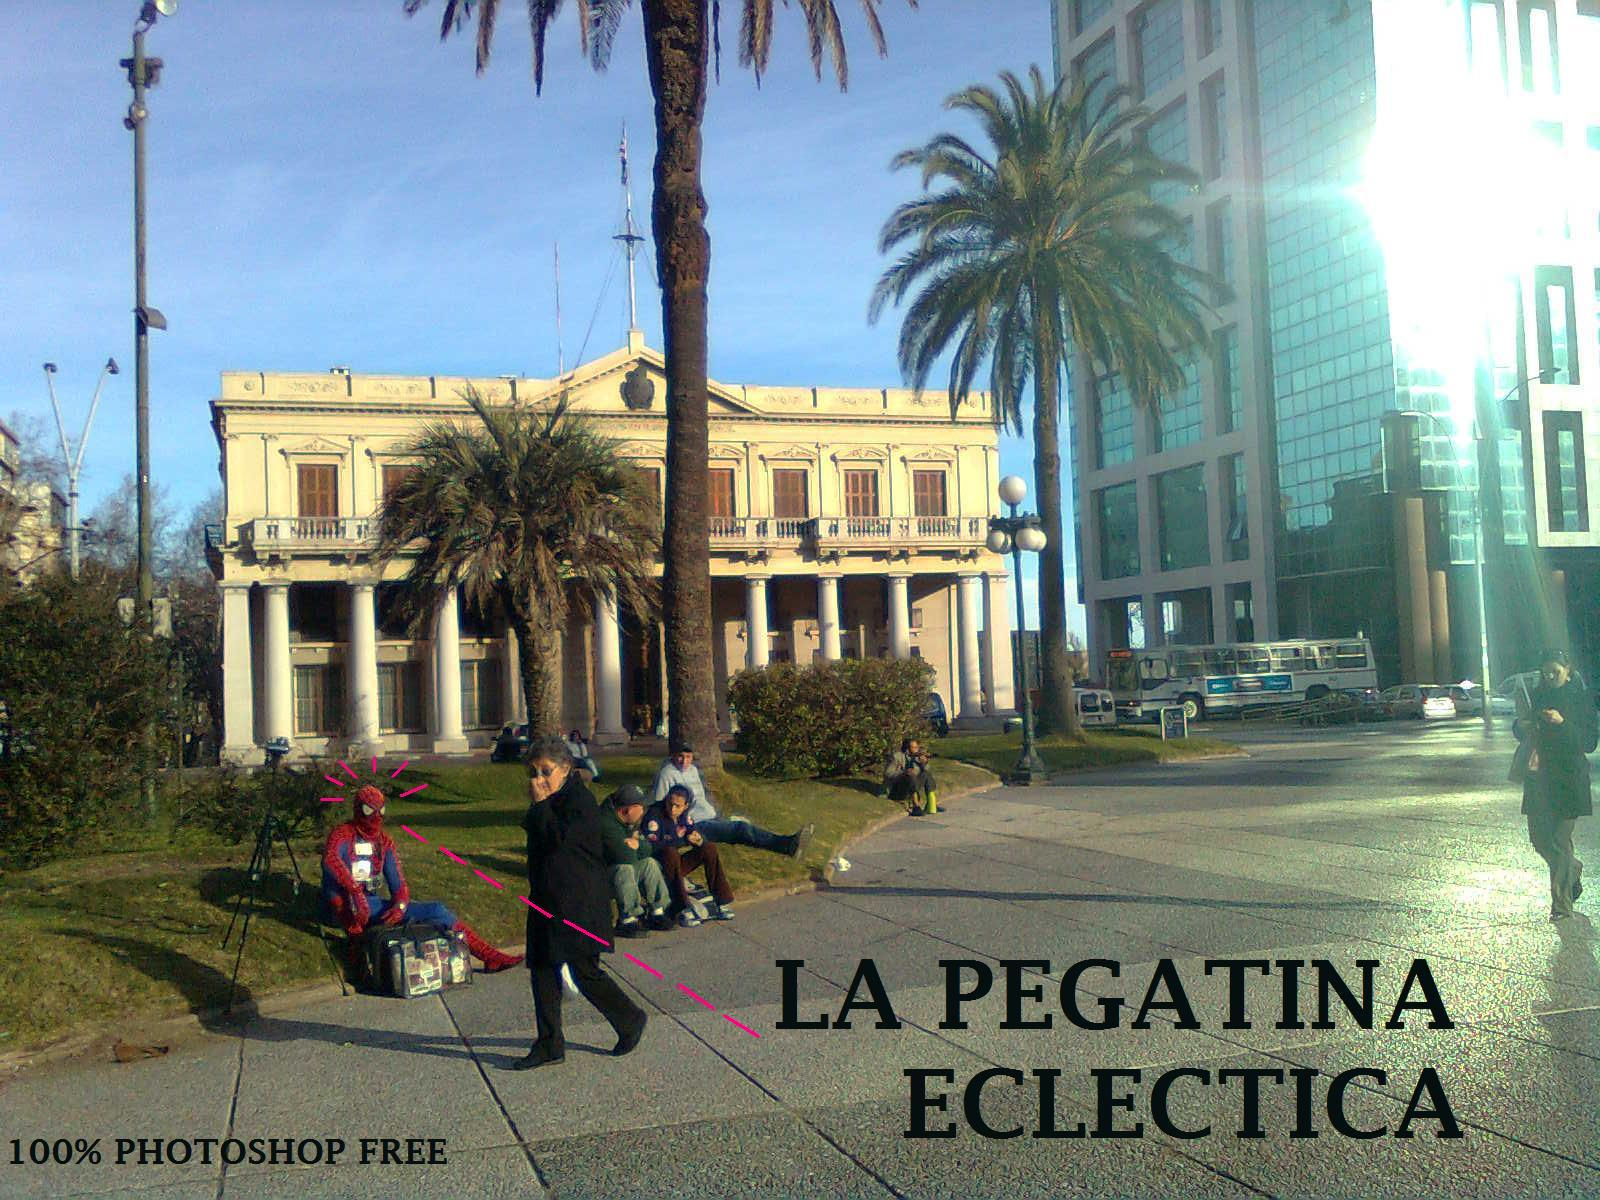 La Pegatina Eclctica